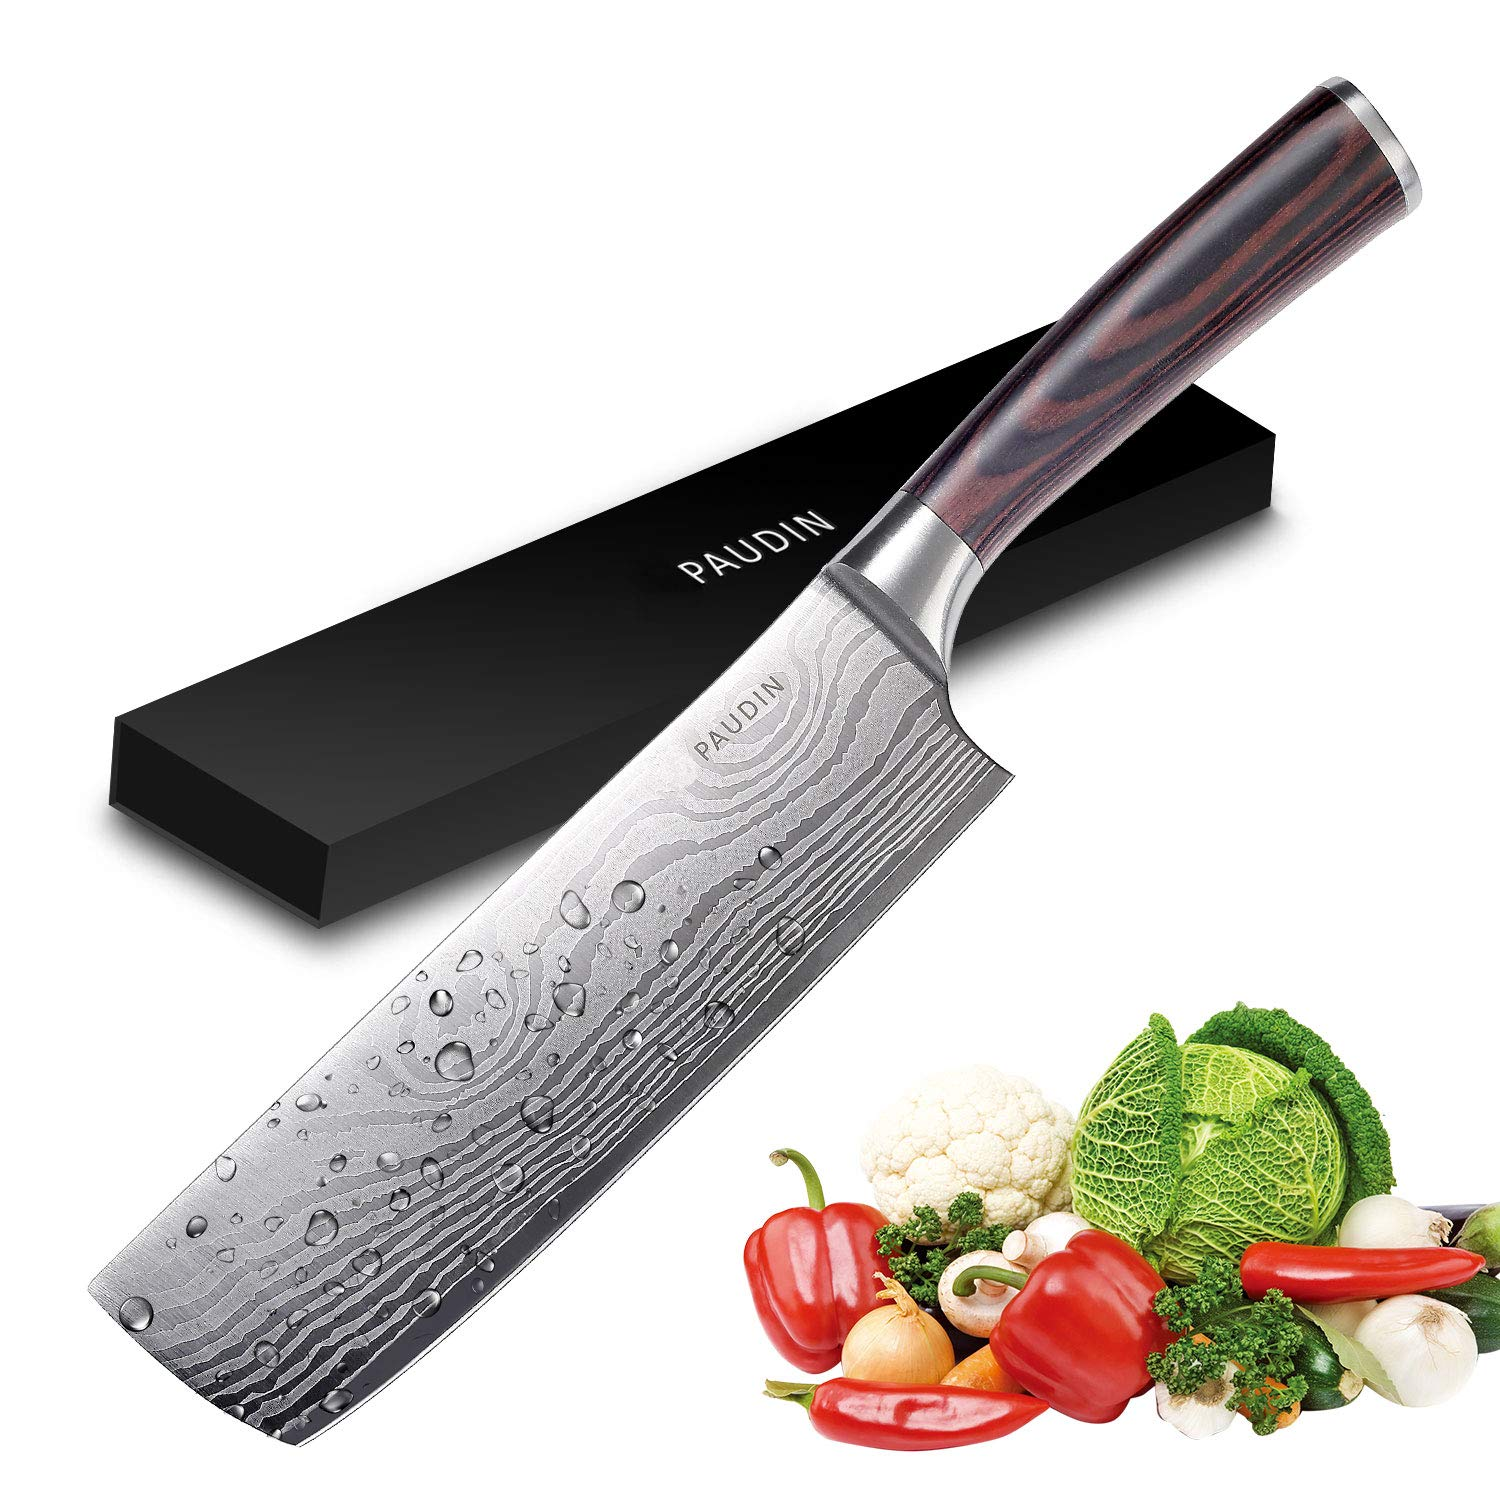 Cleaver Knife - PAUDIN 7 inch Chinese Vegetable Cleaver Kitchen Knife N6 German High Carbon Stainless Steel Meat Cleaver Knife